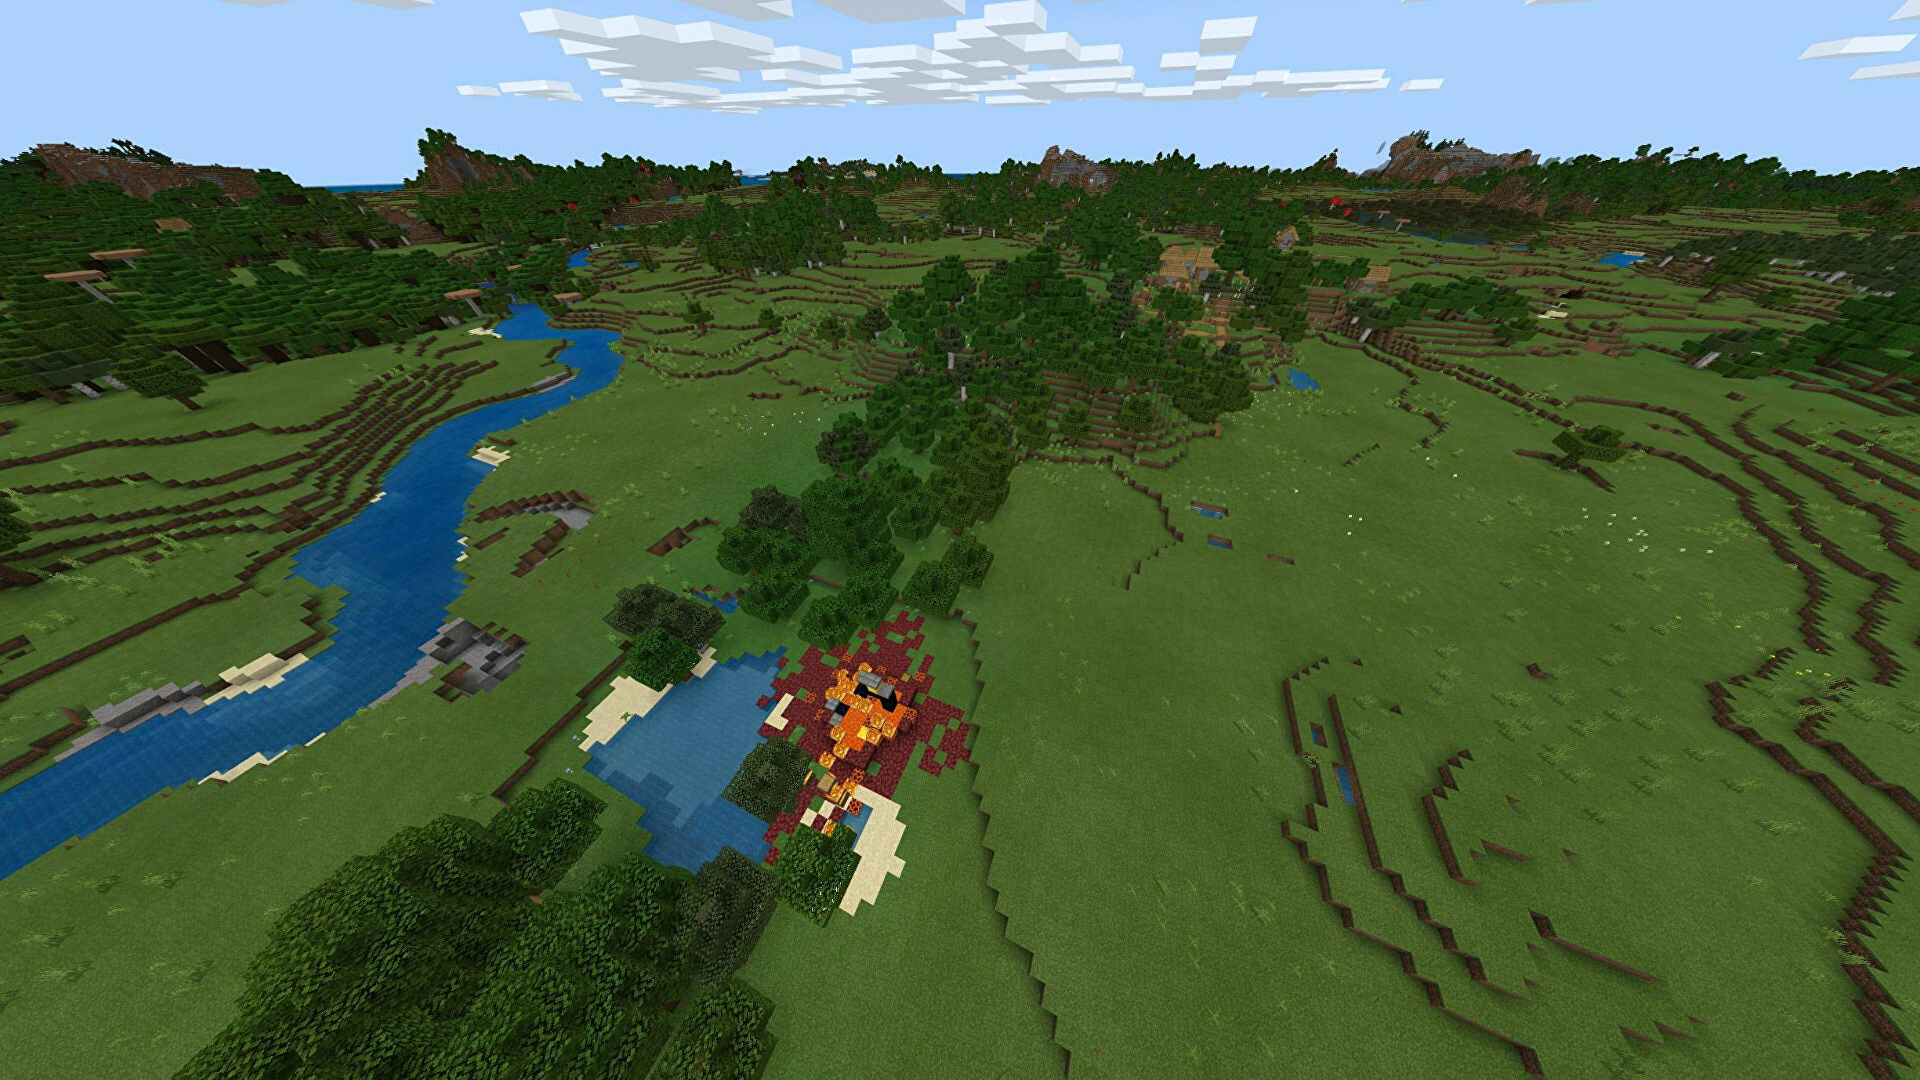 A Minecraft Bedrock screenshot of a new world created with the seed -2125155448.